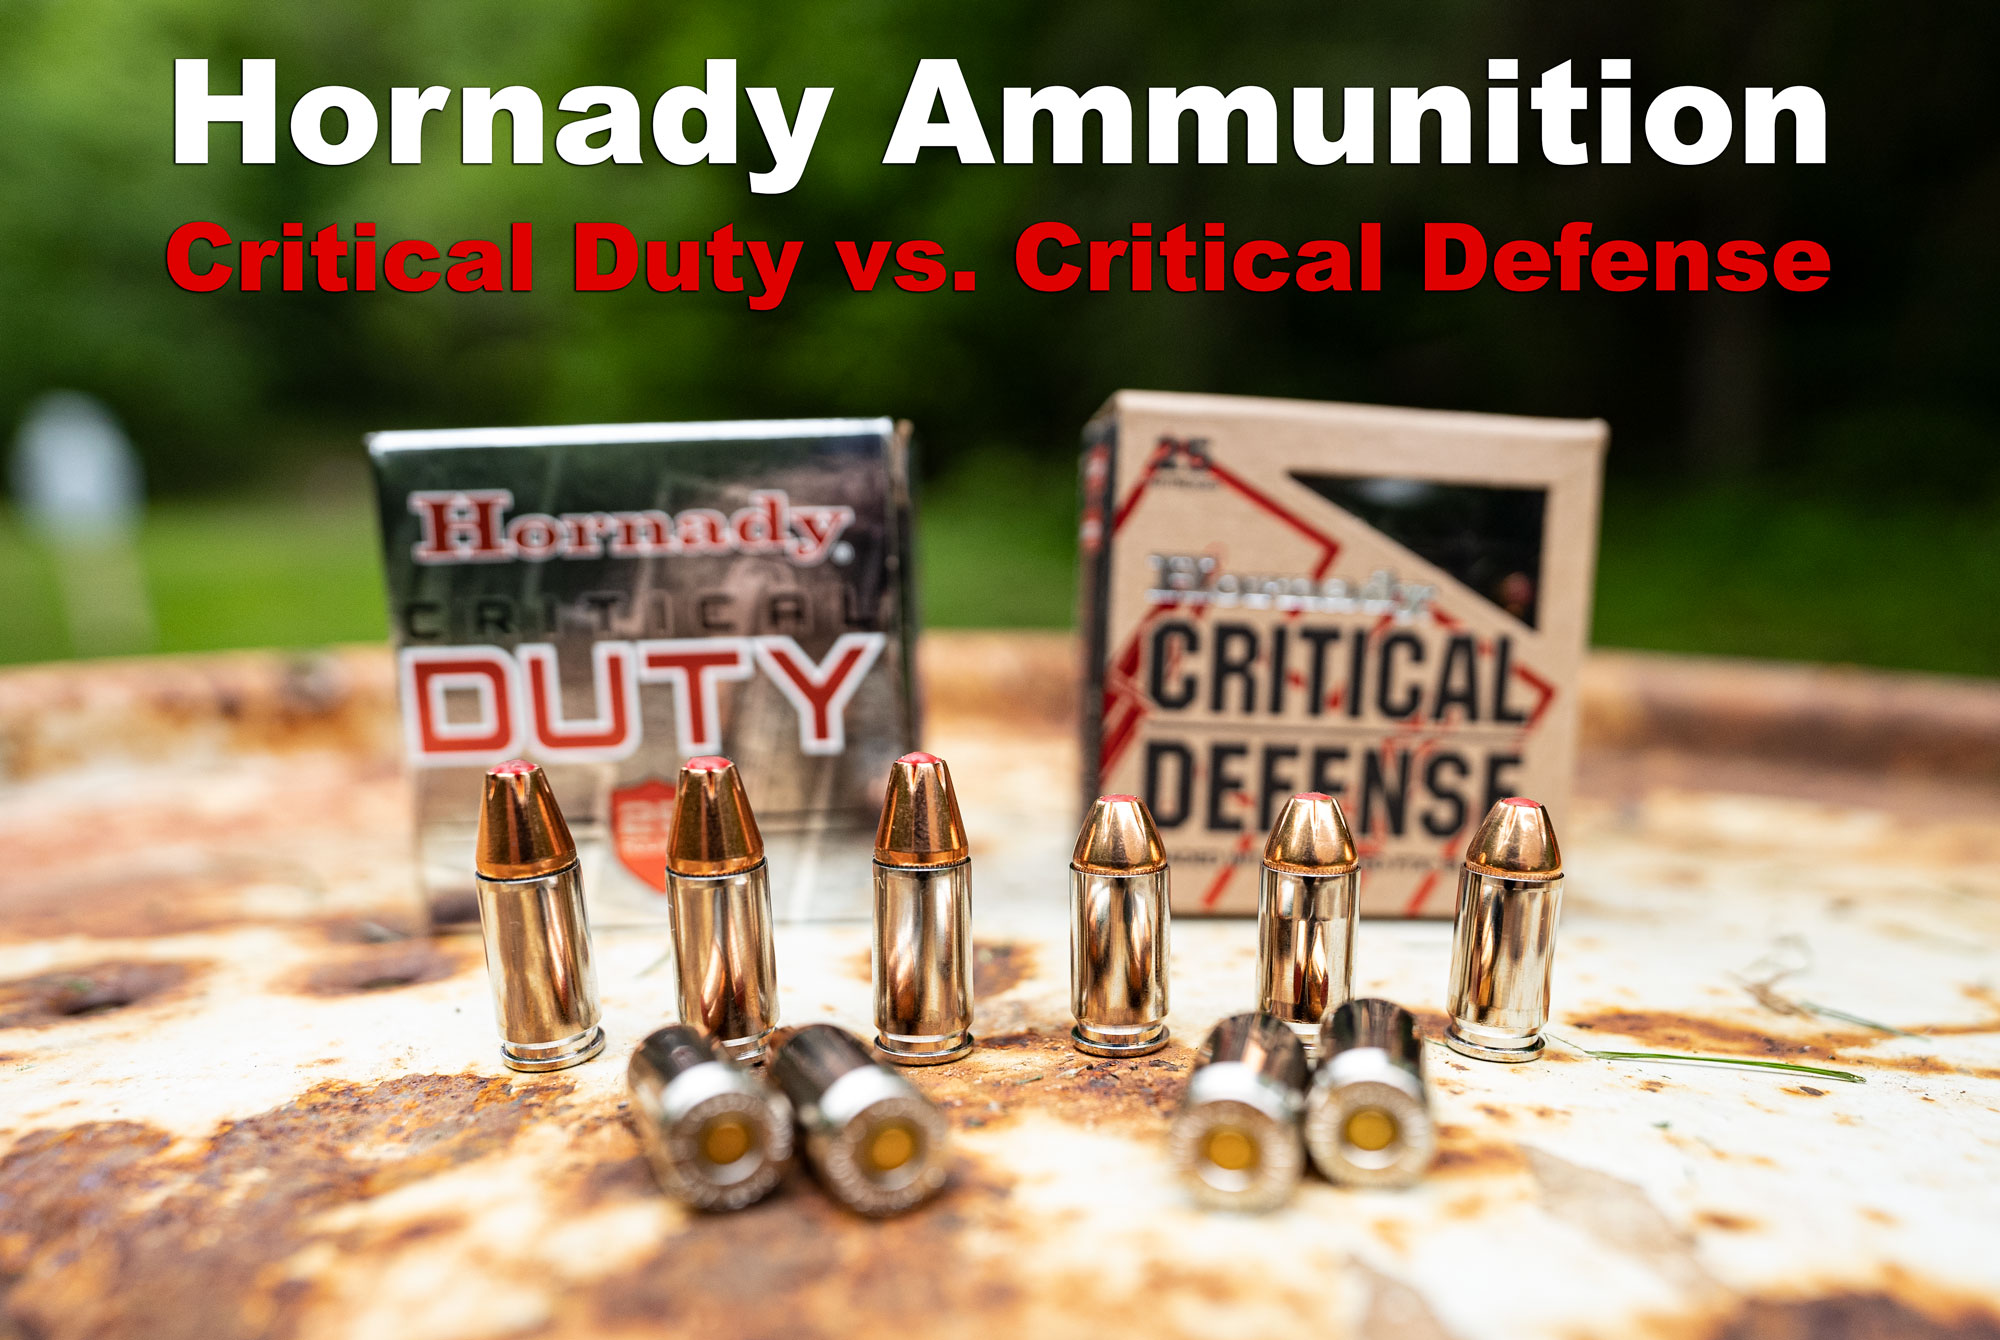 Critical Duty vs Critical Defense ammunition on a table at the range